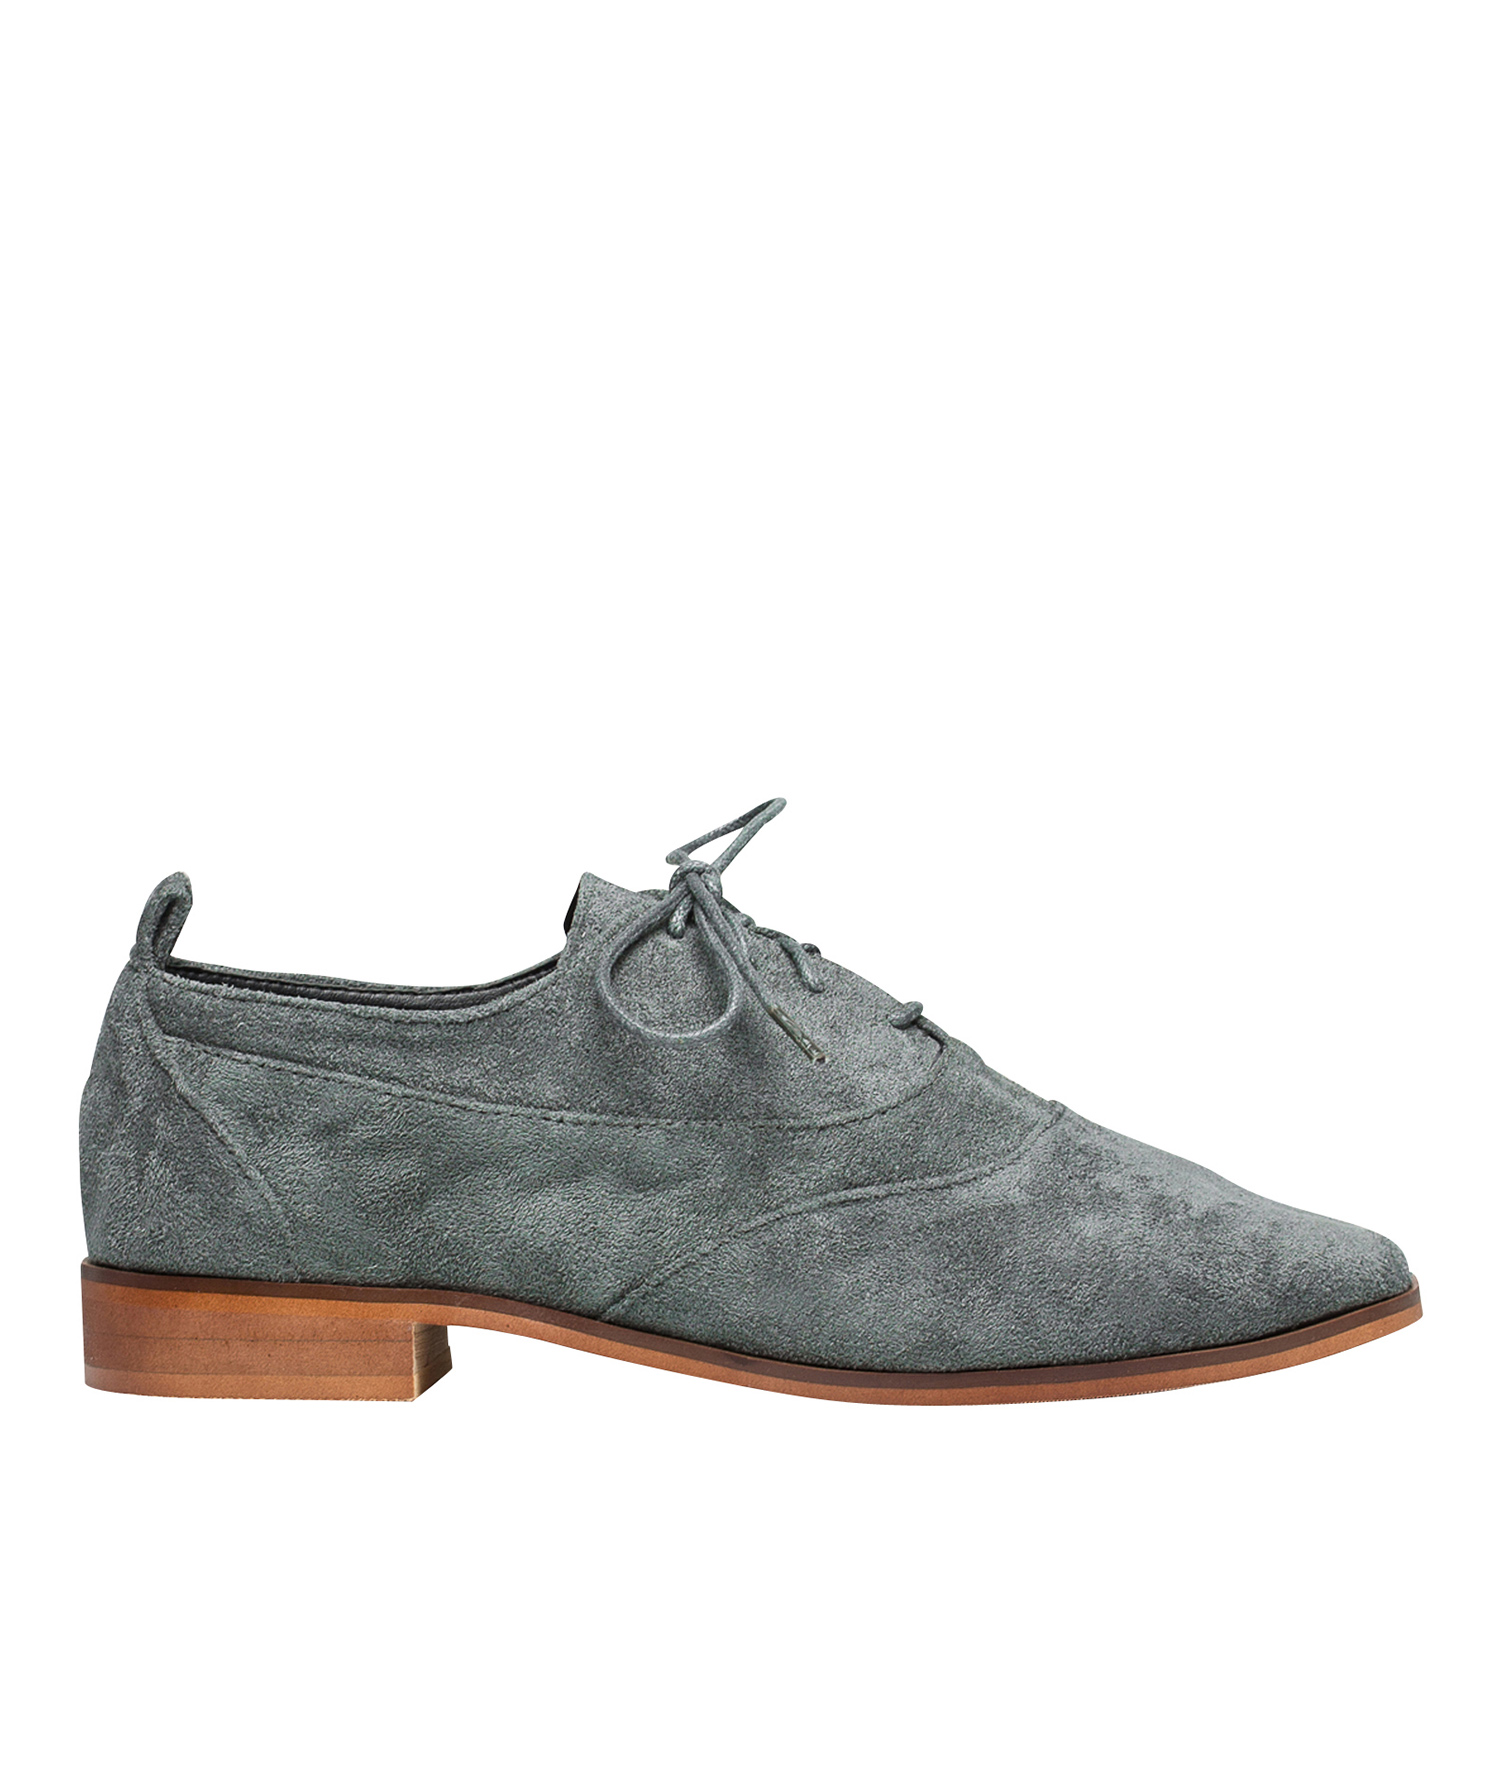 AnnaKastle Womens Vegan Suede Lace Up Oxfords Gray 19229b525